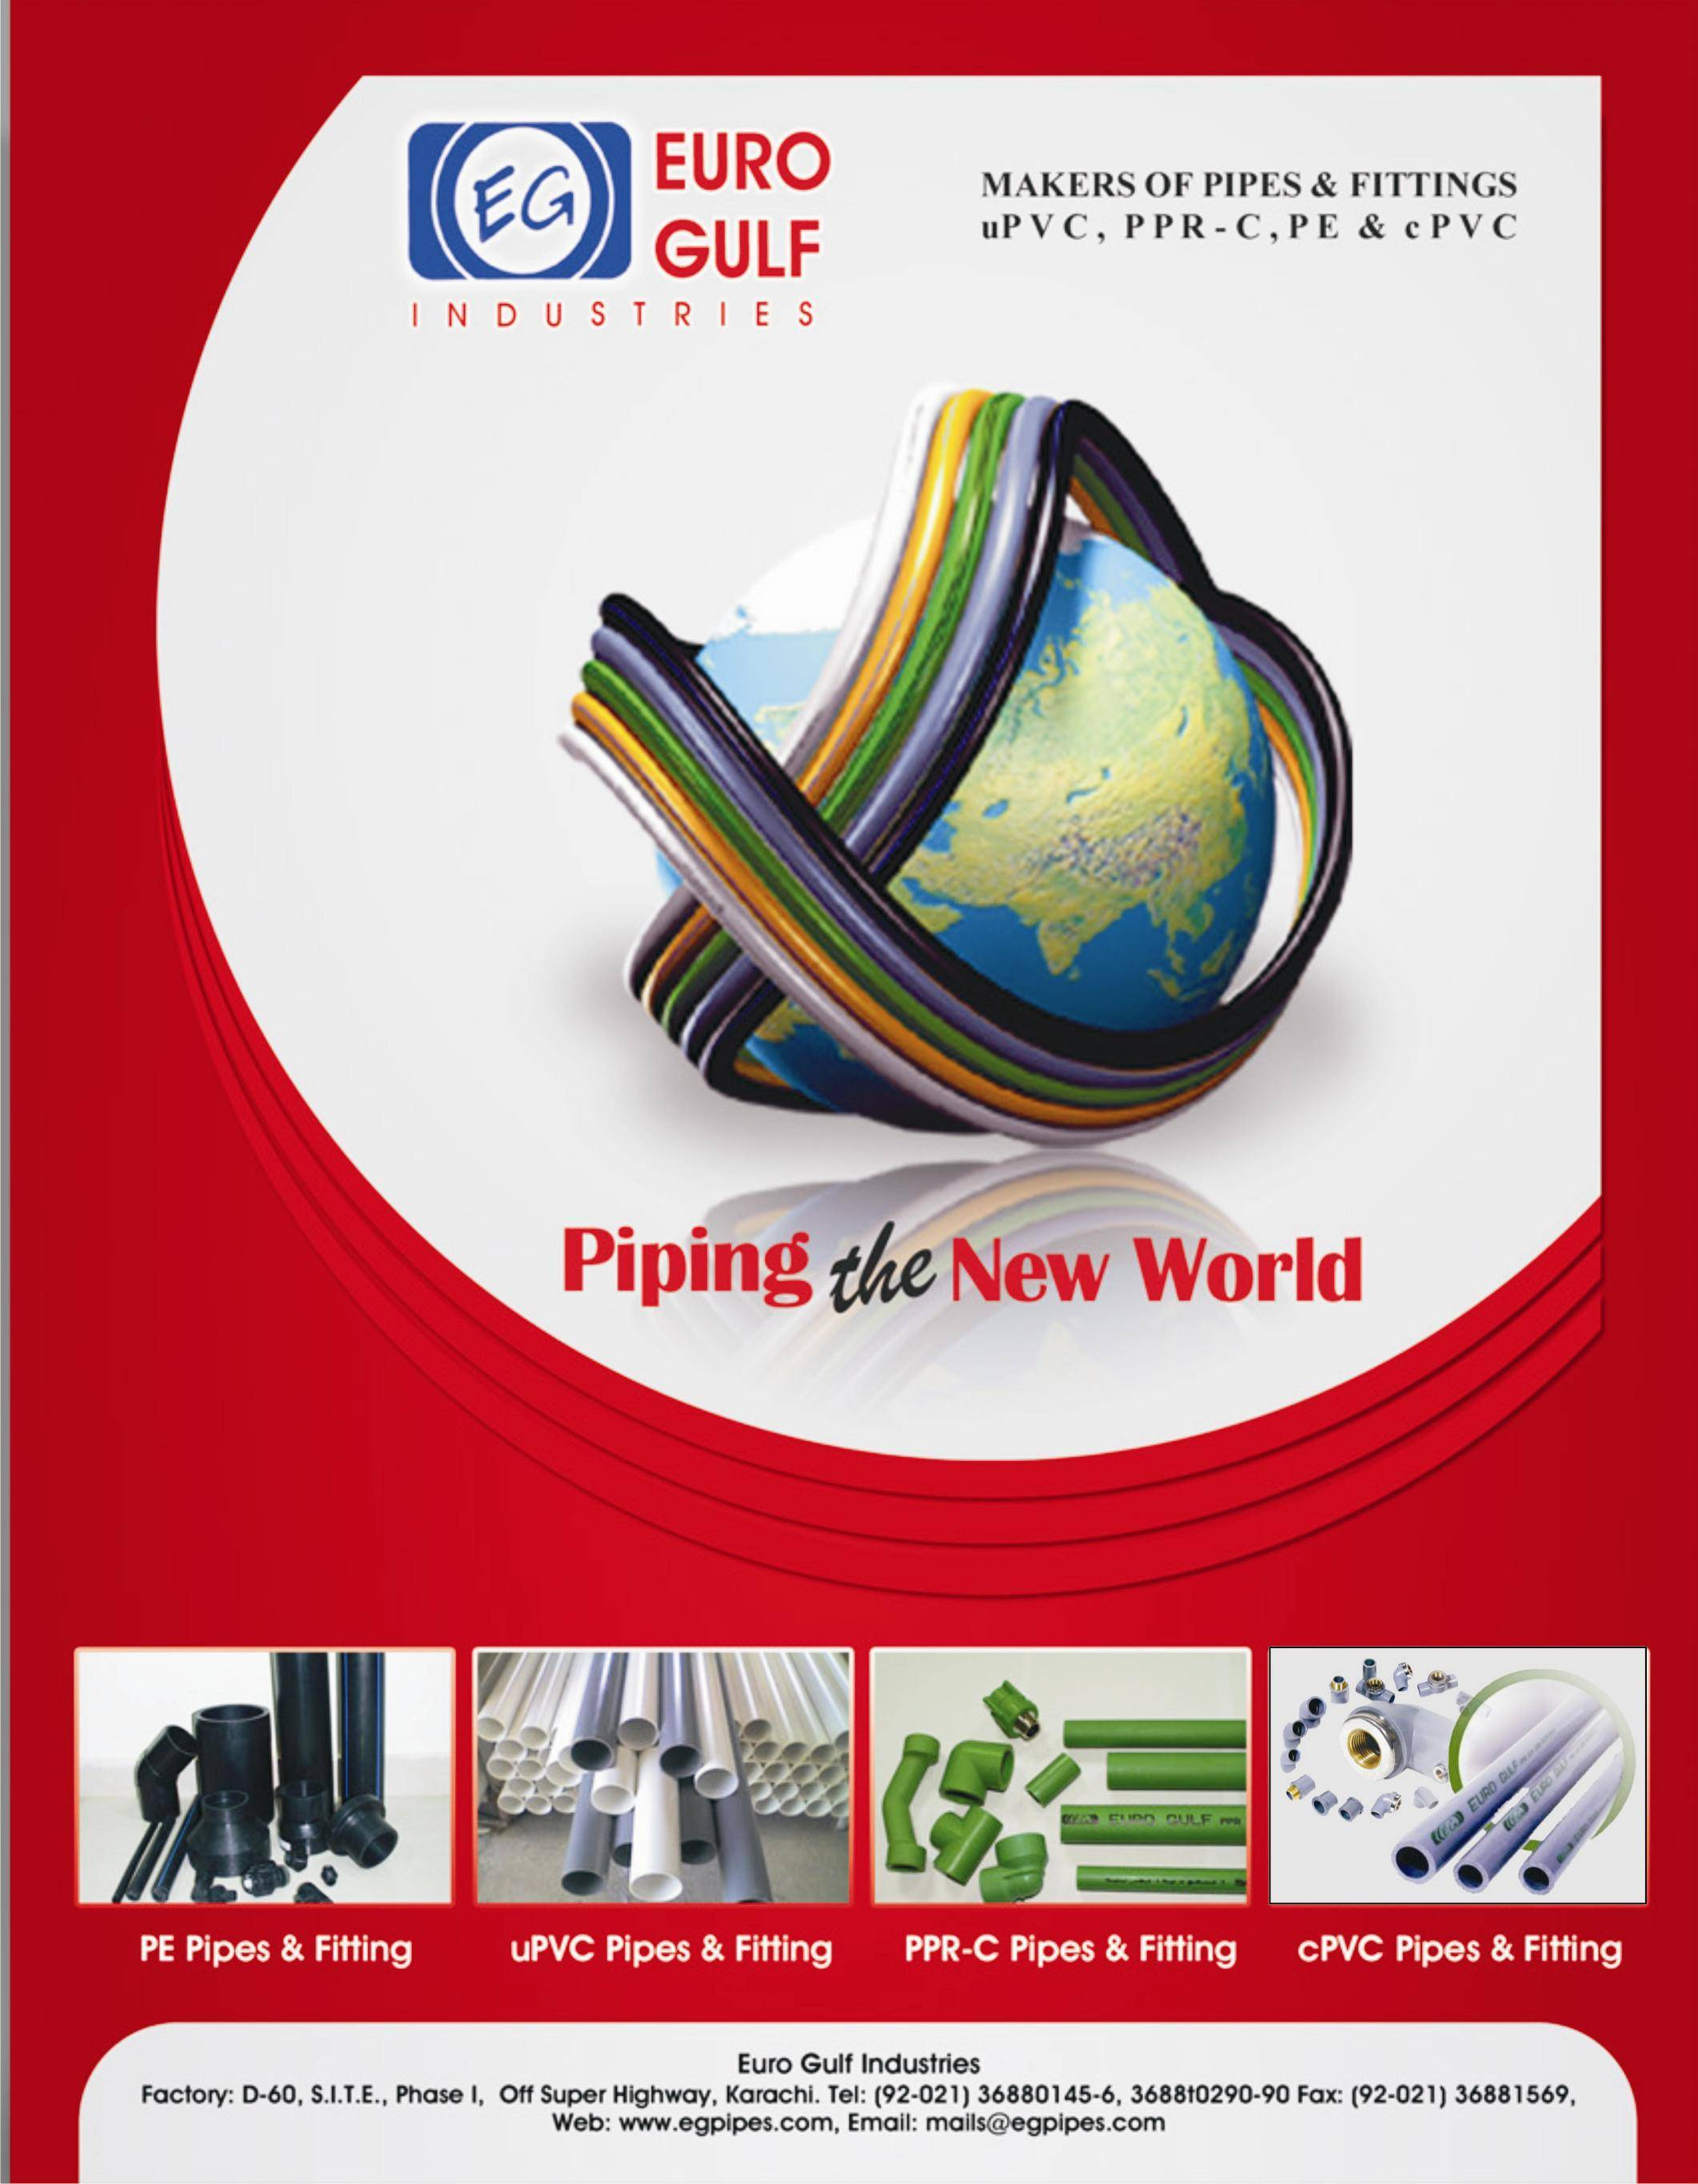 We Sell UPVC, PE, CPVC And PPRC Pipe And Fitting Of Top Quality